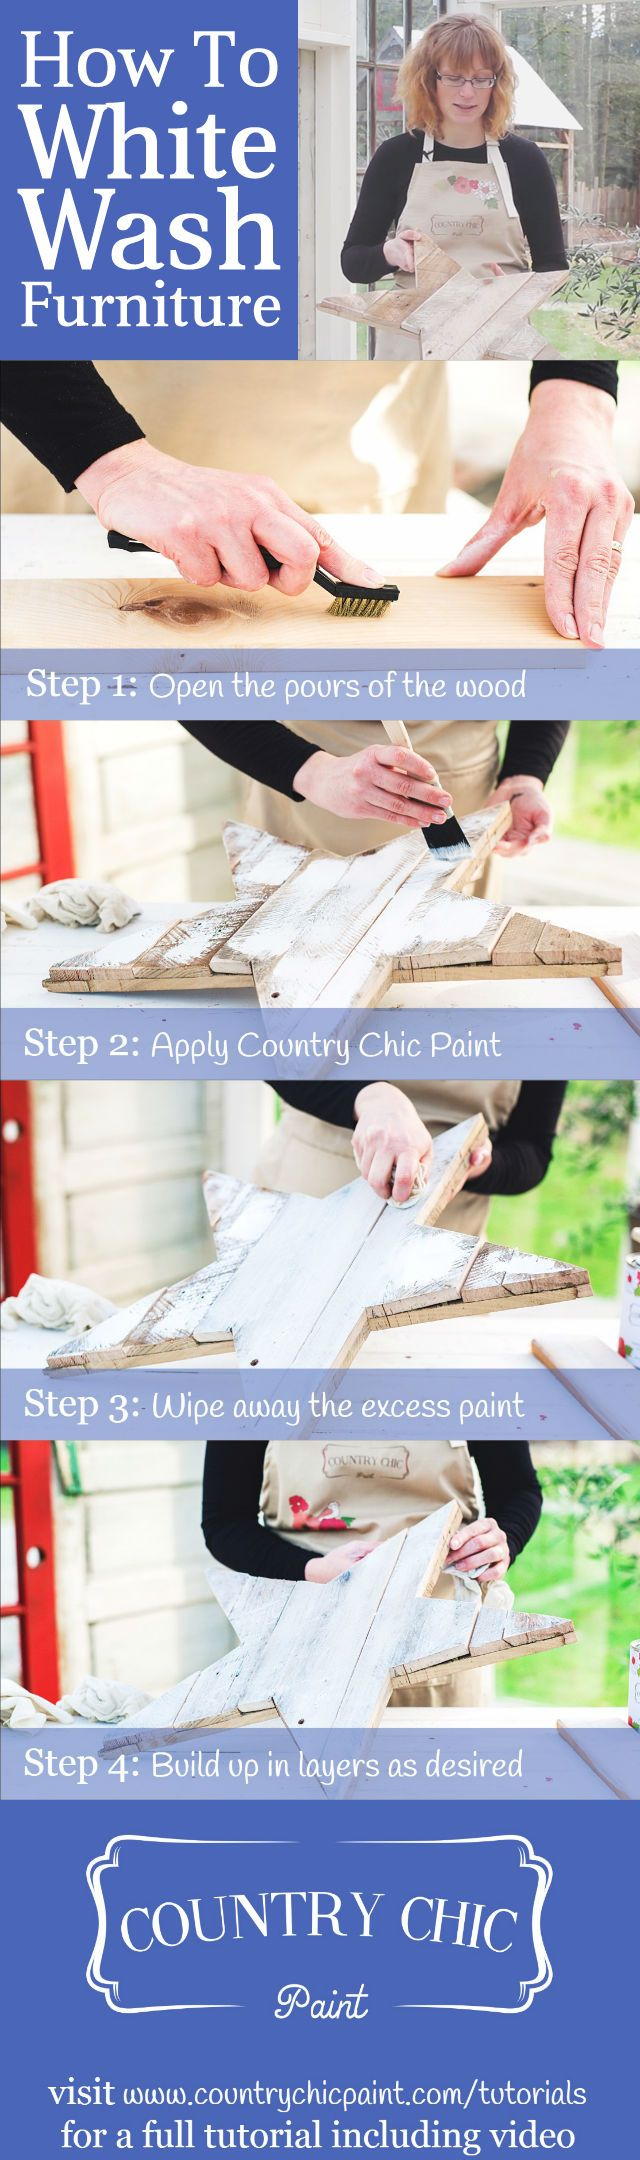 white washed furniture whitewash. how to white wash furniture whitewashing tutorial countrychicpaint wwwcountrychicpaintcom washed whitewash d